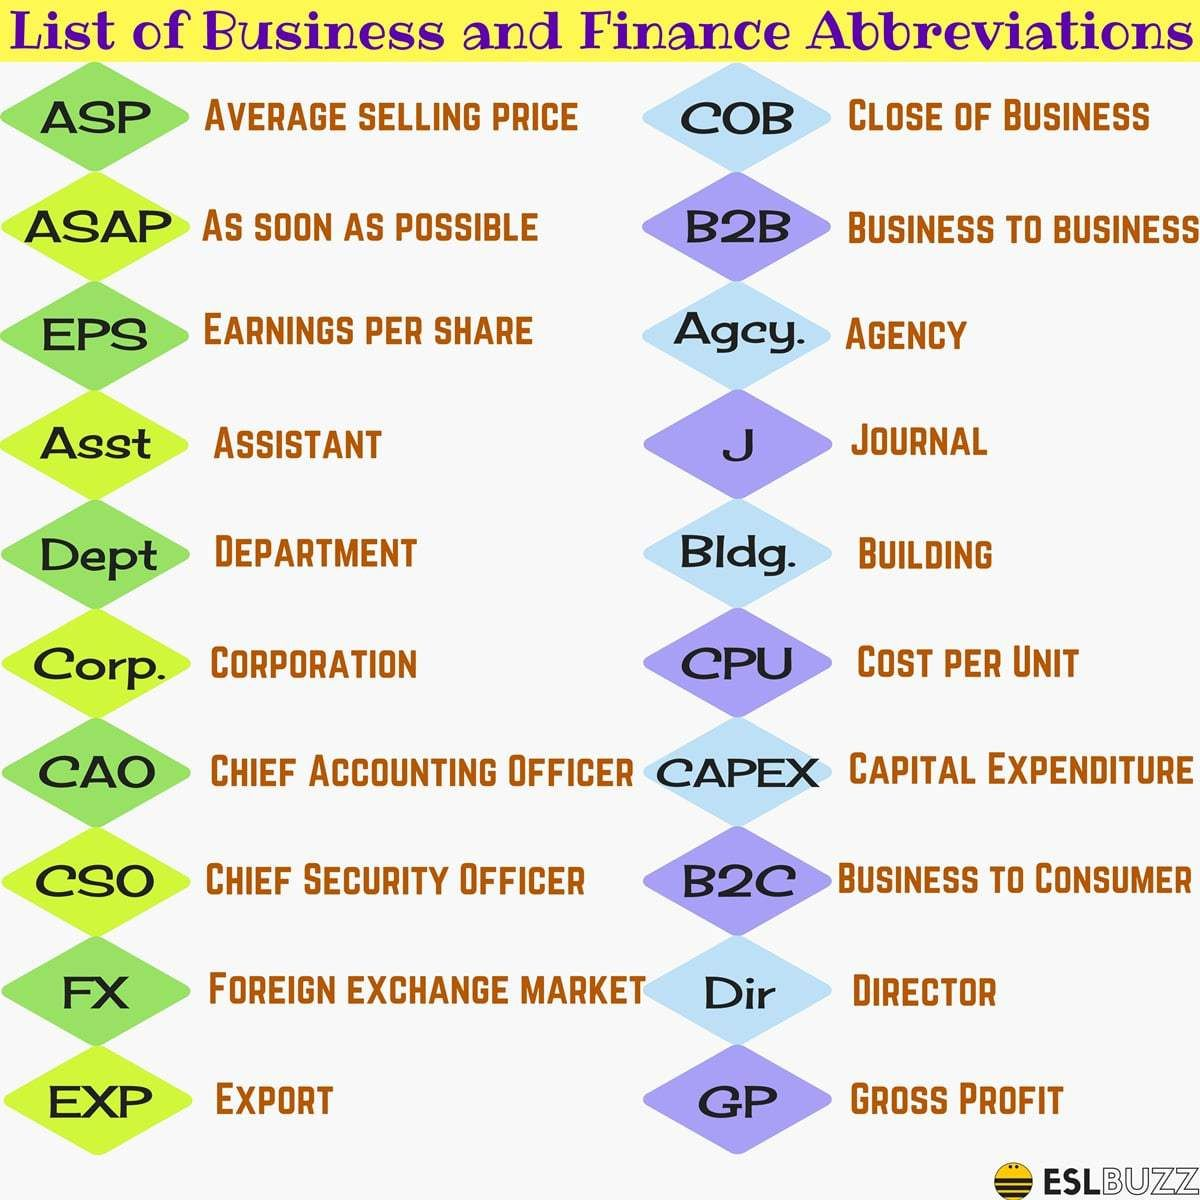 Financial Abbreviations Business Acronyms And Finance Abbreviations In English